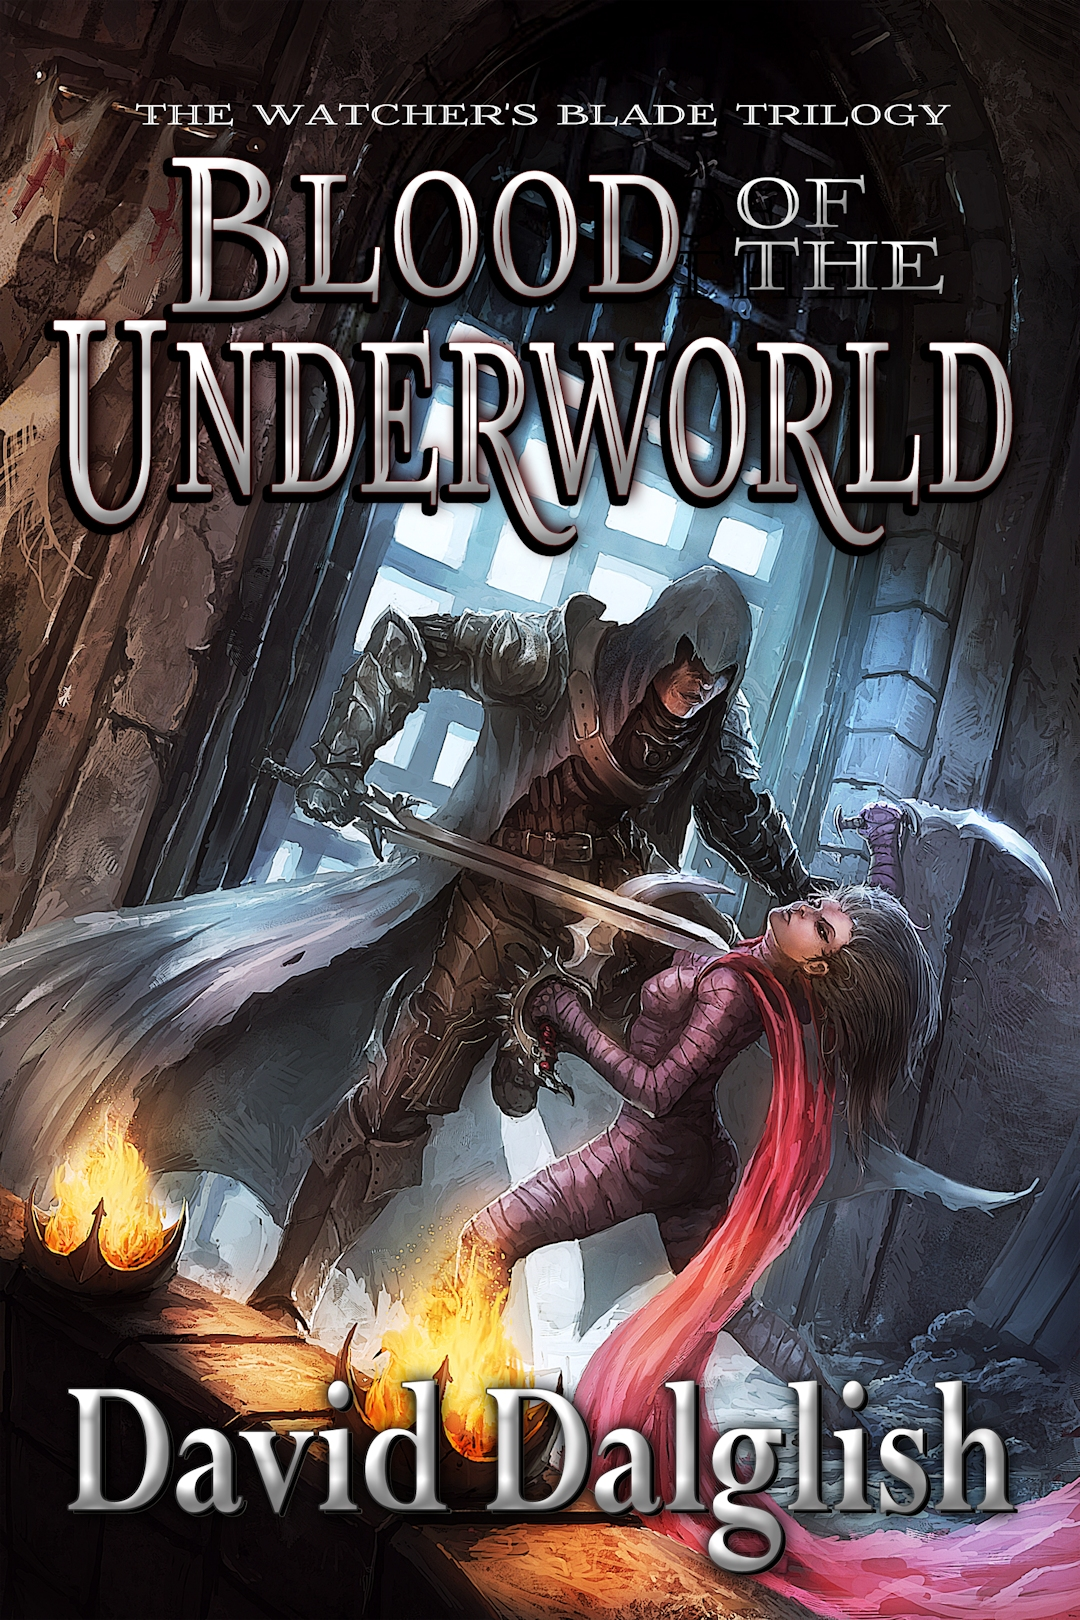 Blood of the Underworld By: David Dalglish